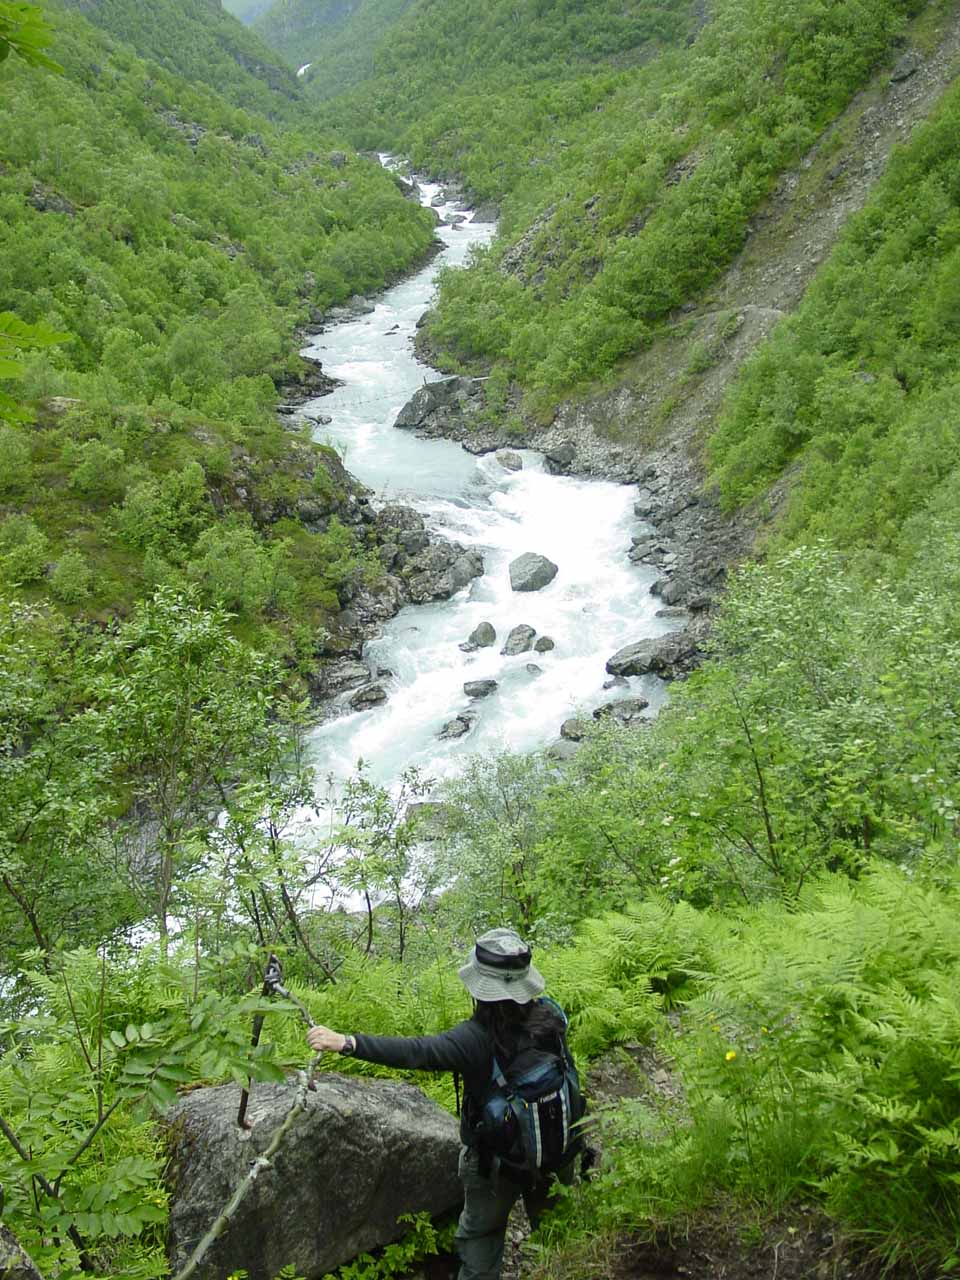 Julie descending the steep path beyond Vetti as the trail dropped down to the level of the river